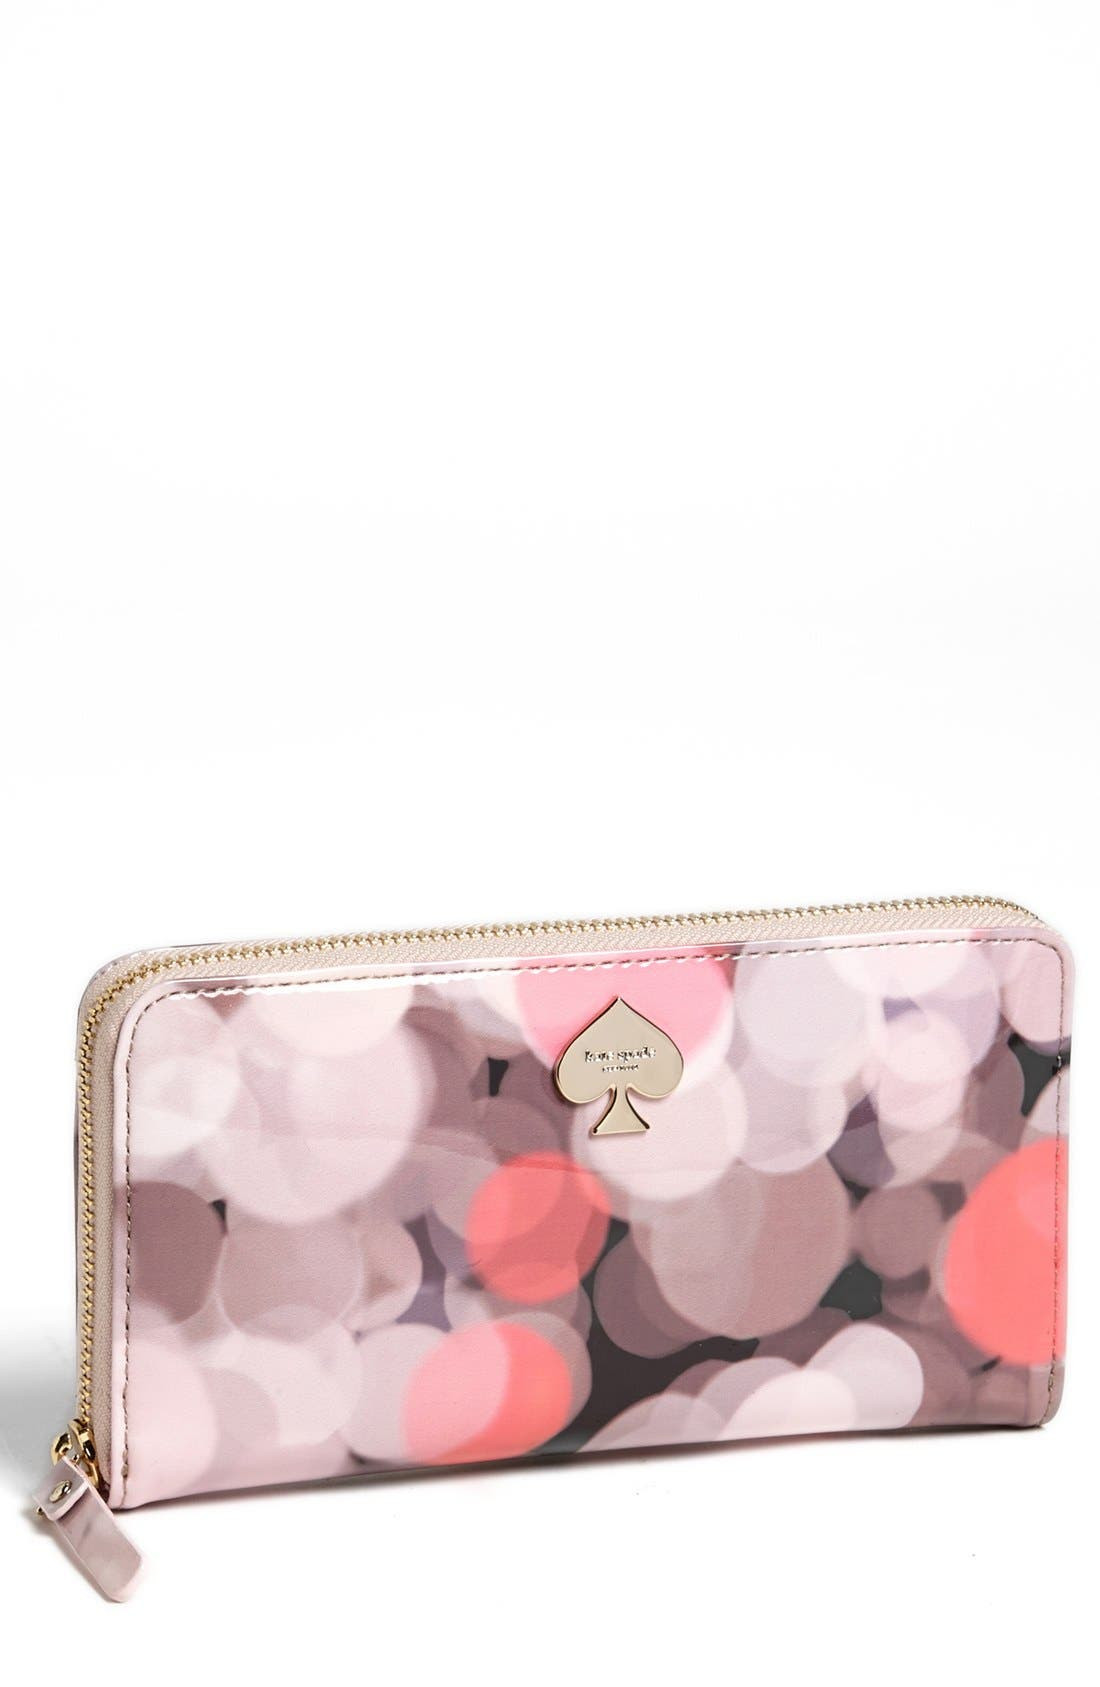 Main Image - kate spade new york 'all that glitters - lacey' wallet